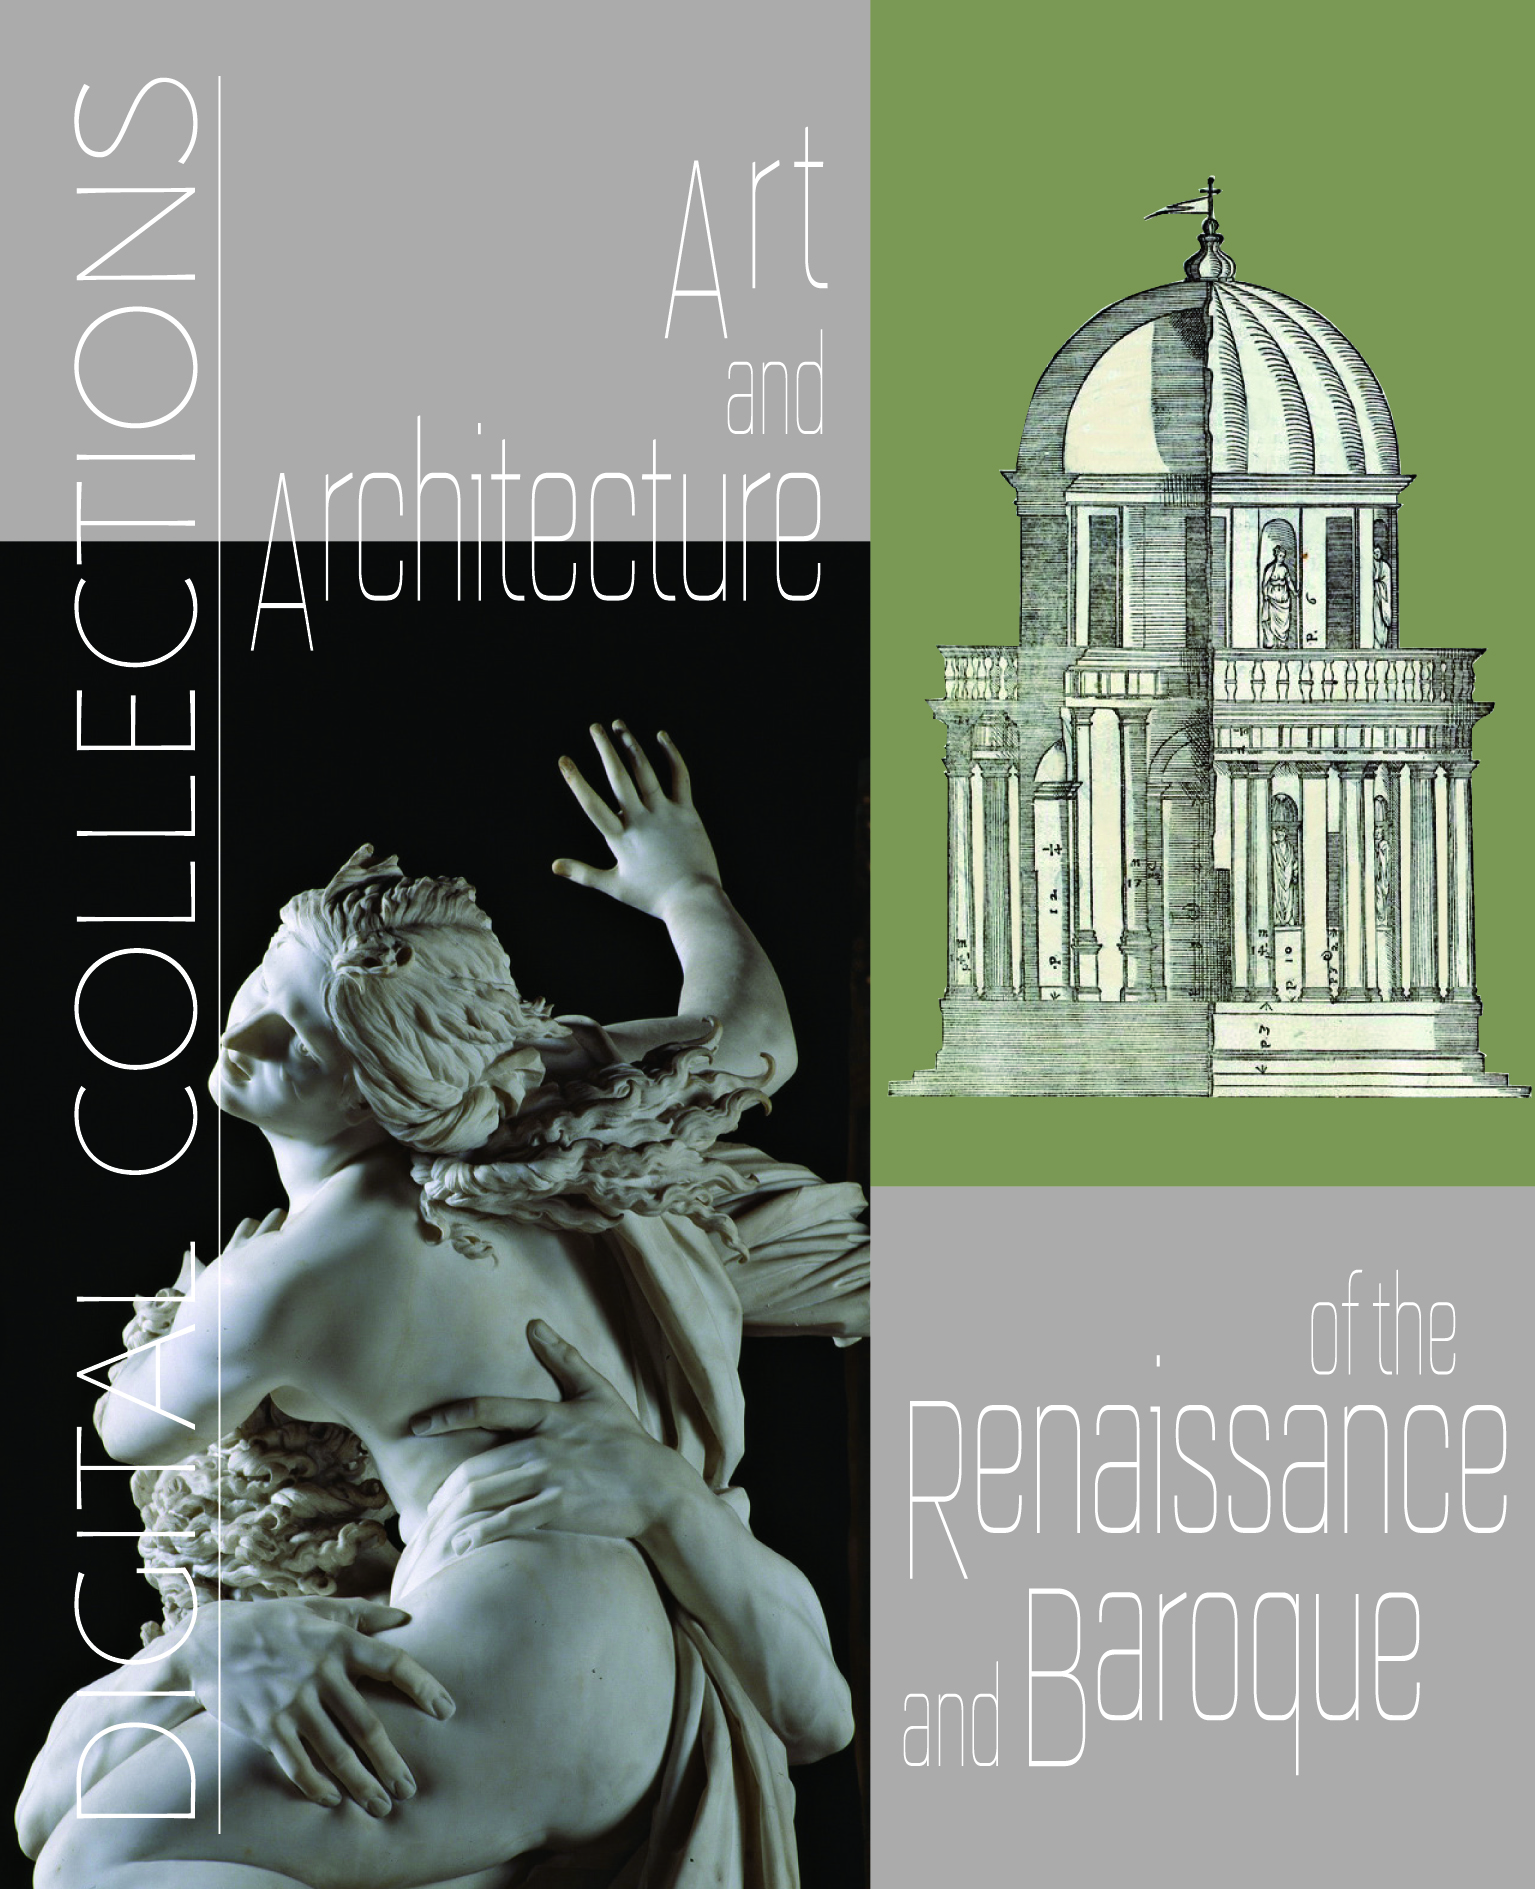 Art and Architecture of the Renaissance and Baroque